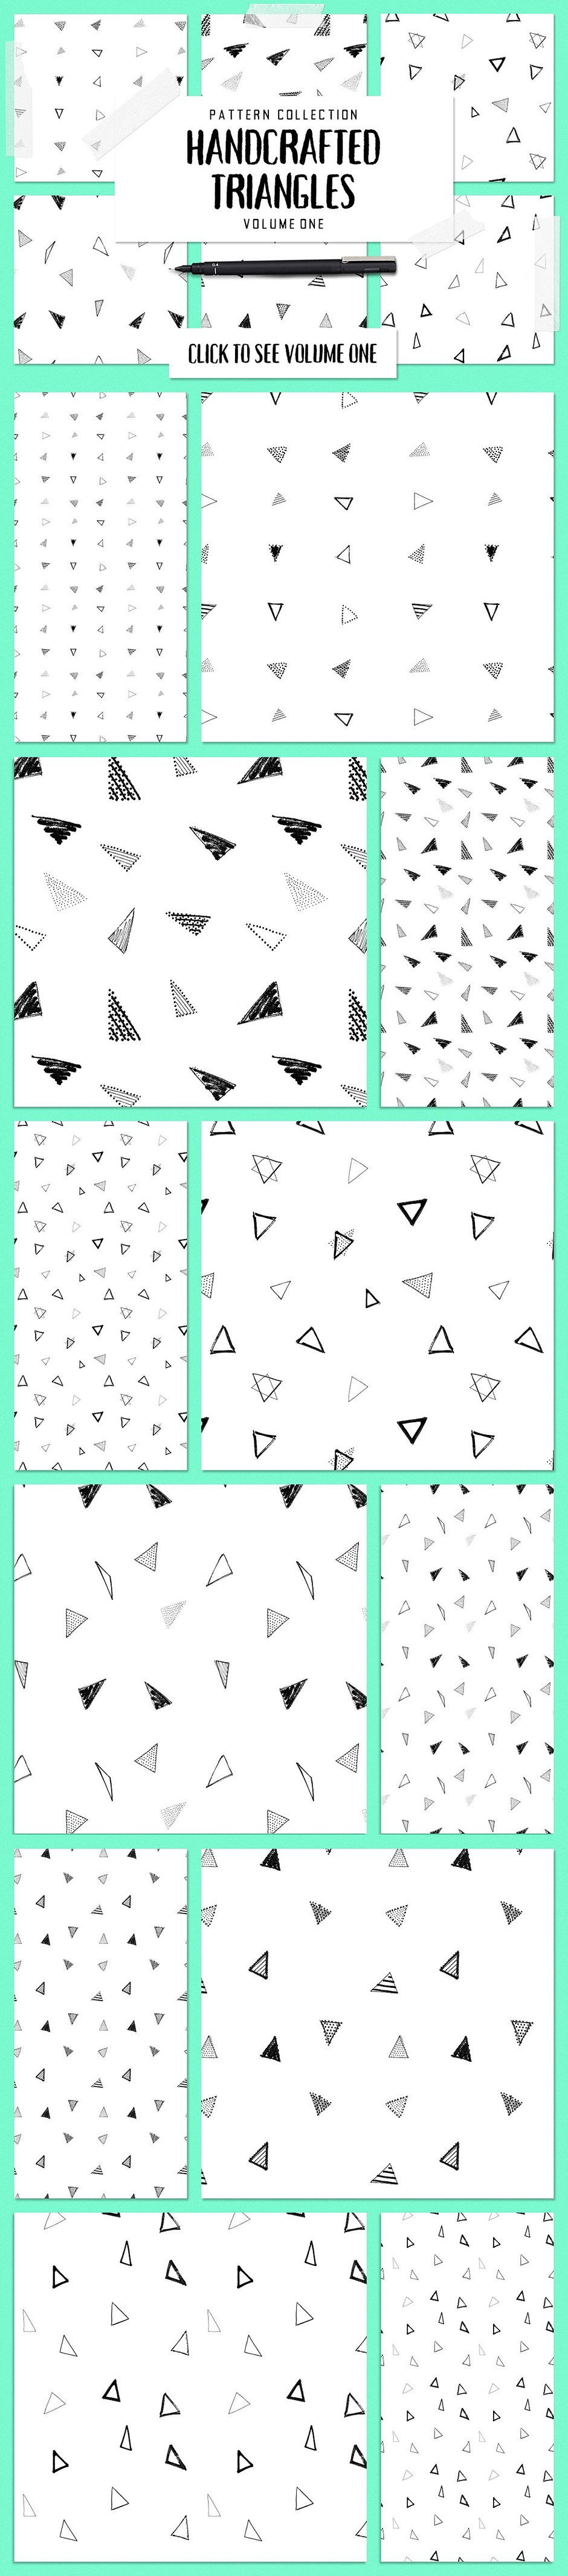 The Mega Mix Match Vector Triangles Pack